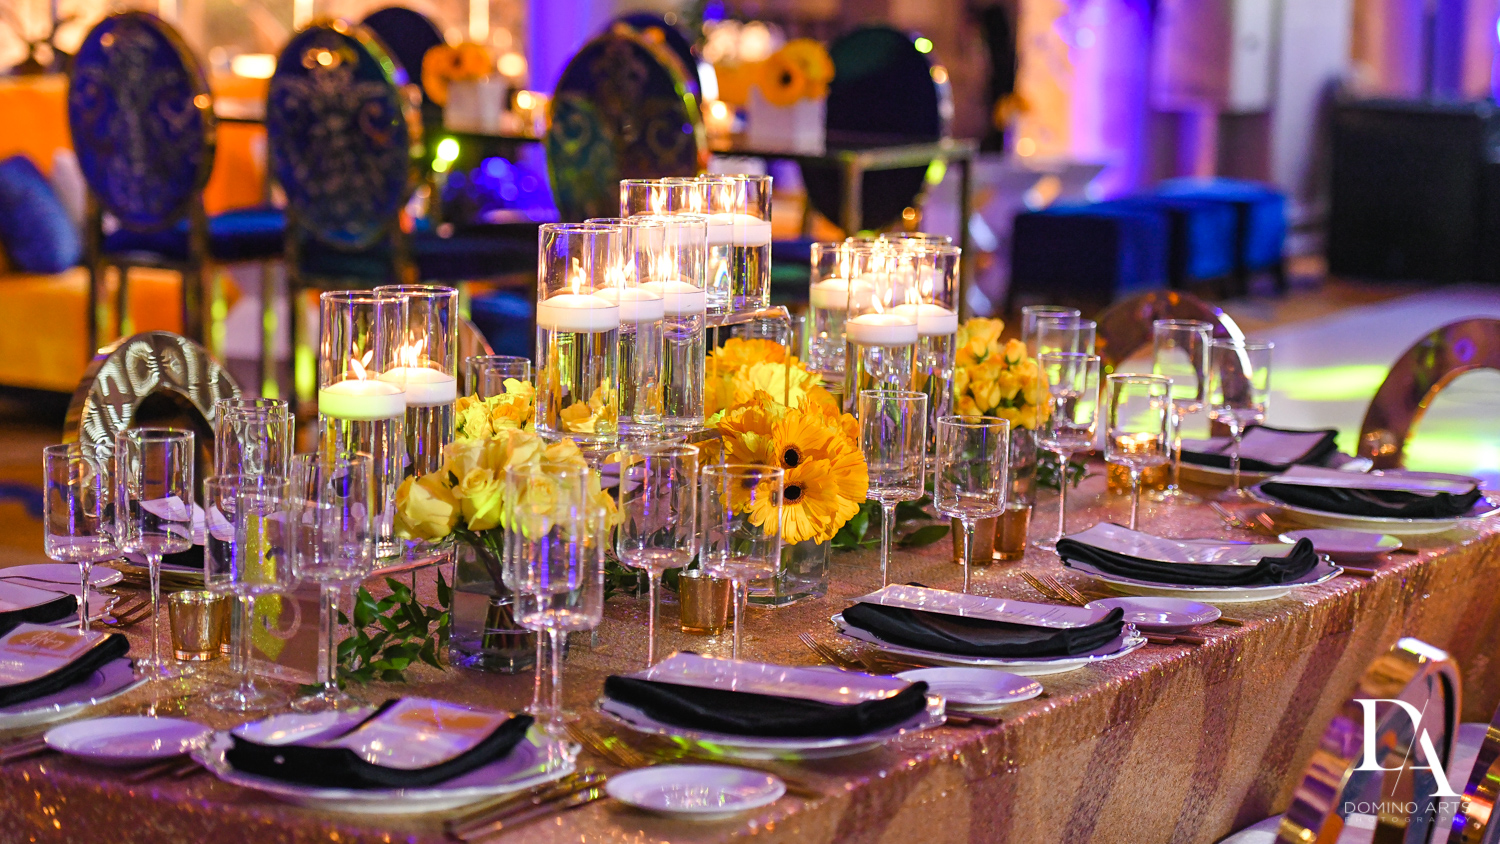 flowers and candles at Madeline in Paris theme Bat Mitzvah at Boca Raton Resort and Club by Domino Arts Photography